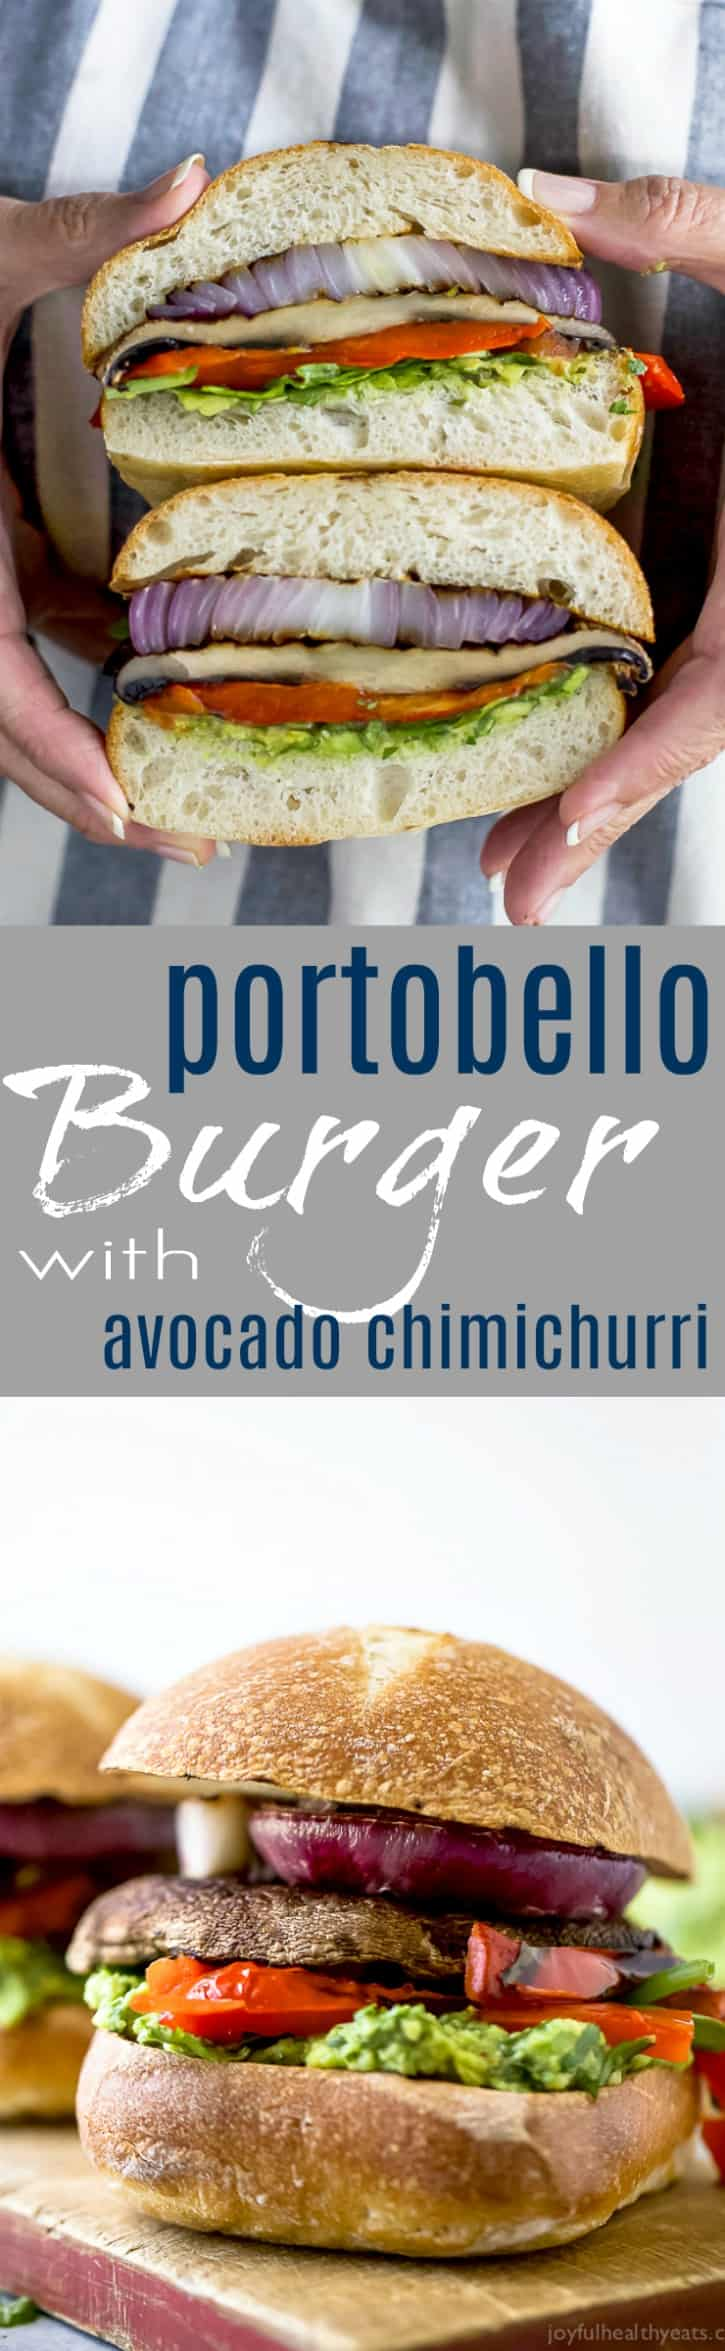 Grilled Portobello Burgers with a zesty Avocado Chimichurri is one perfect way to amp up Meatless Monday. This easy 30 minute burger will be a hit this summer!